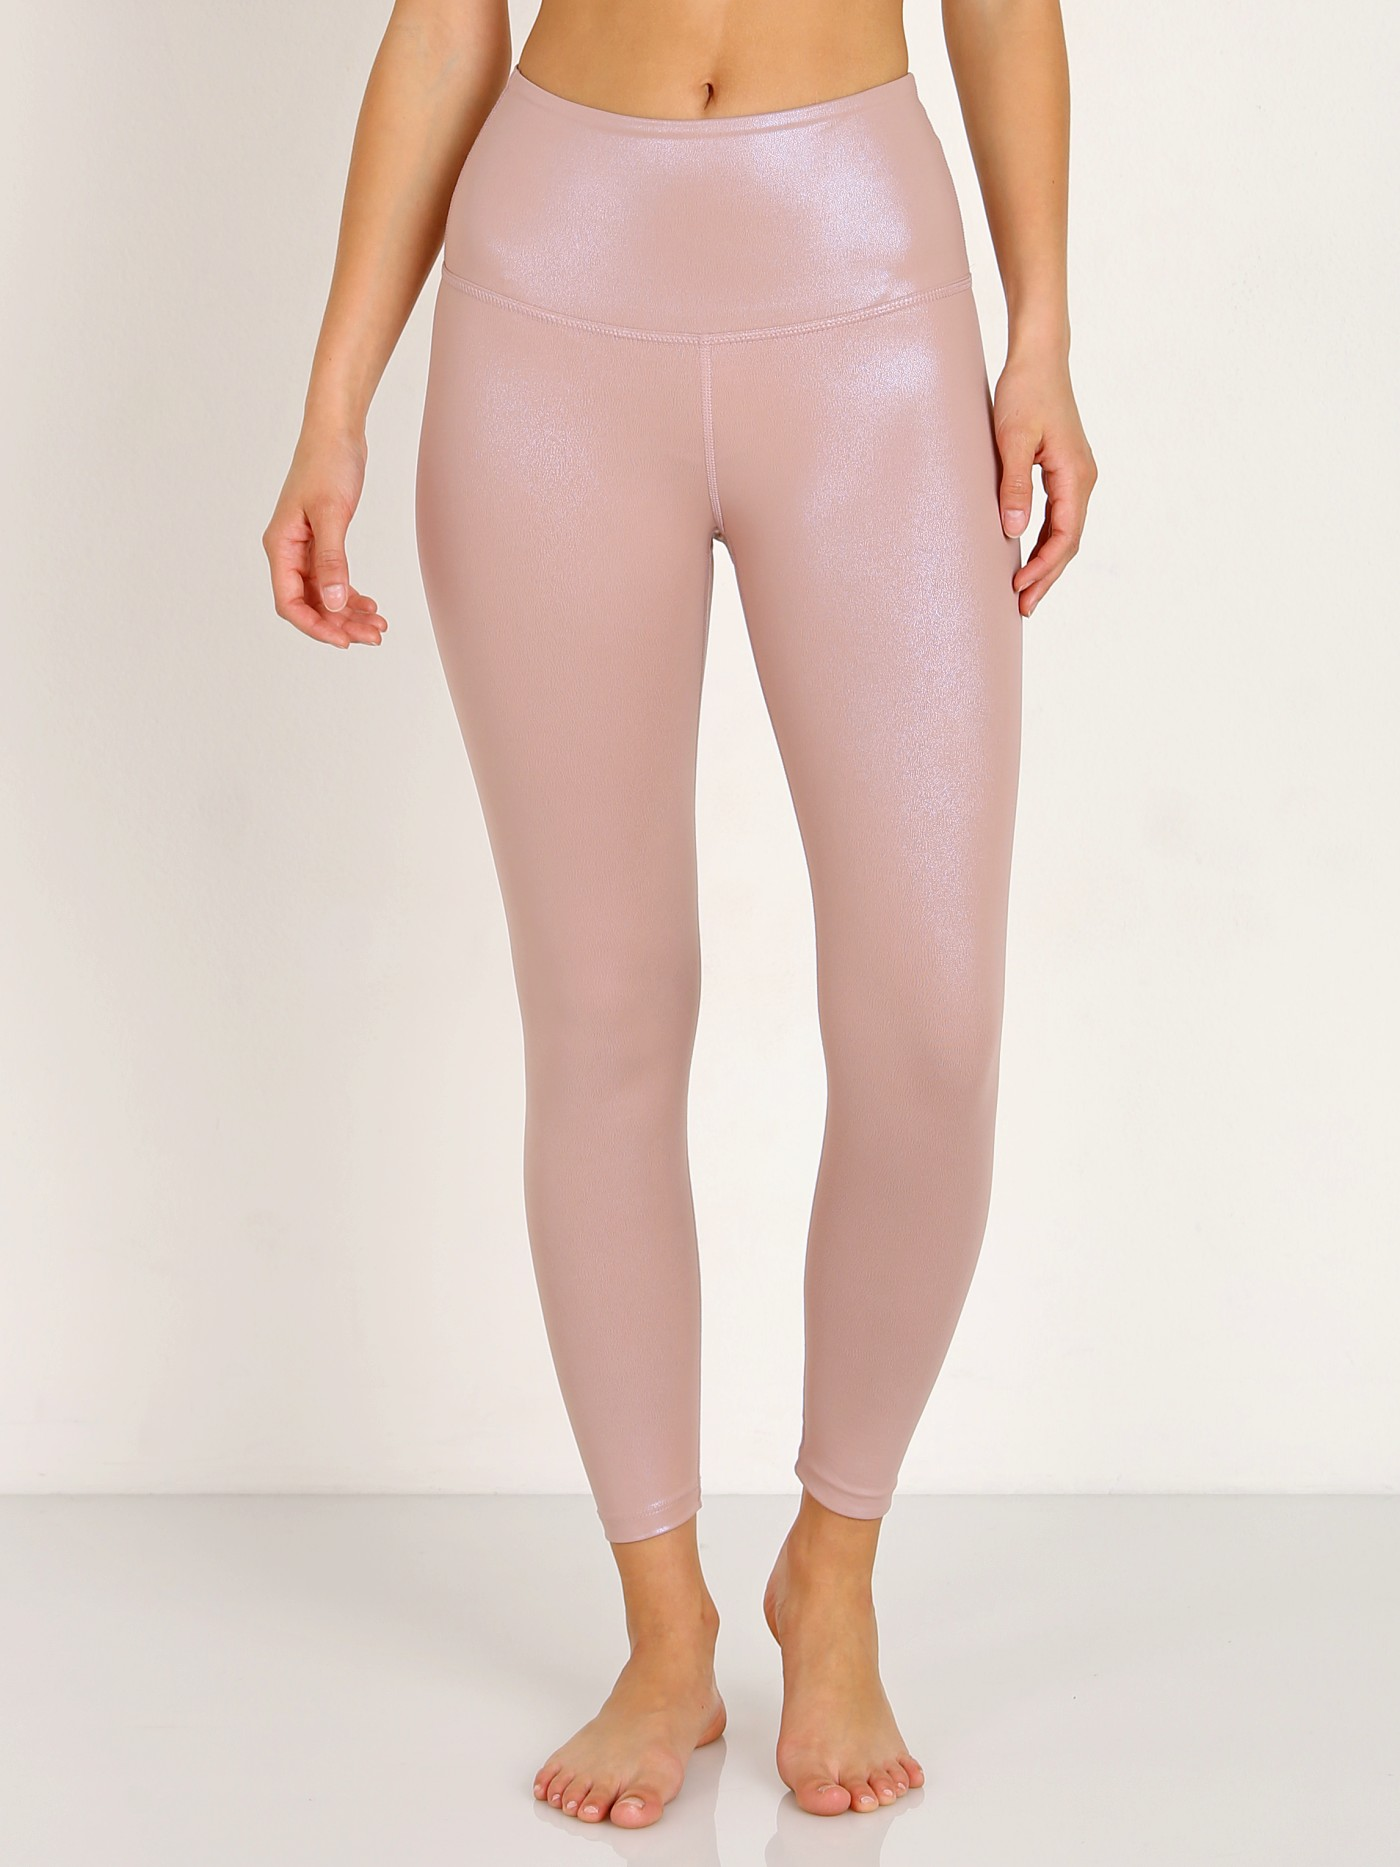 e1bfacb169583 Beyond Yoga Pearlized High Waisted Midi Legging Brazen Blush PE3243 - Free  Shipping at Largo Drive